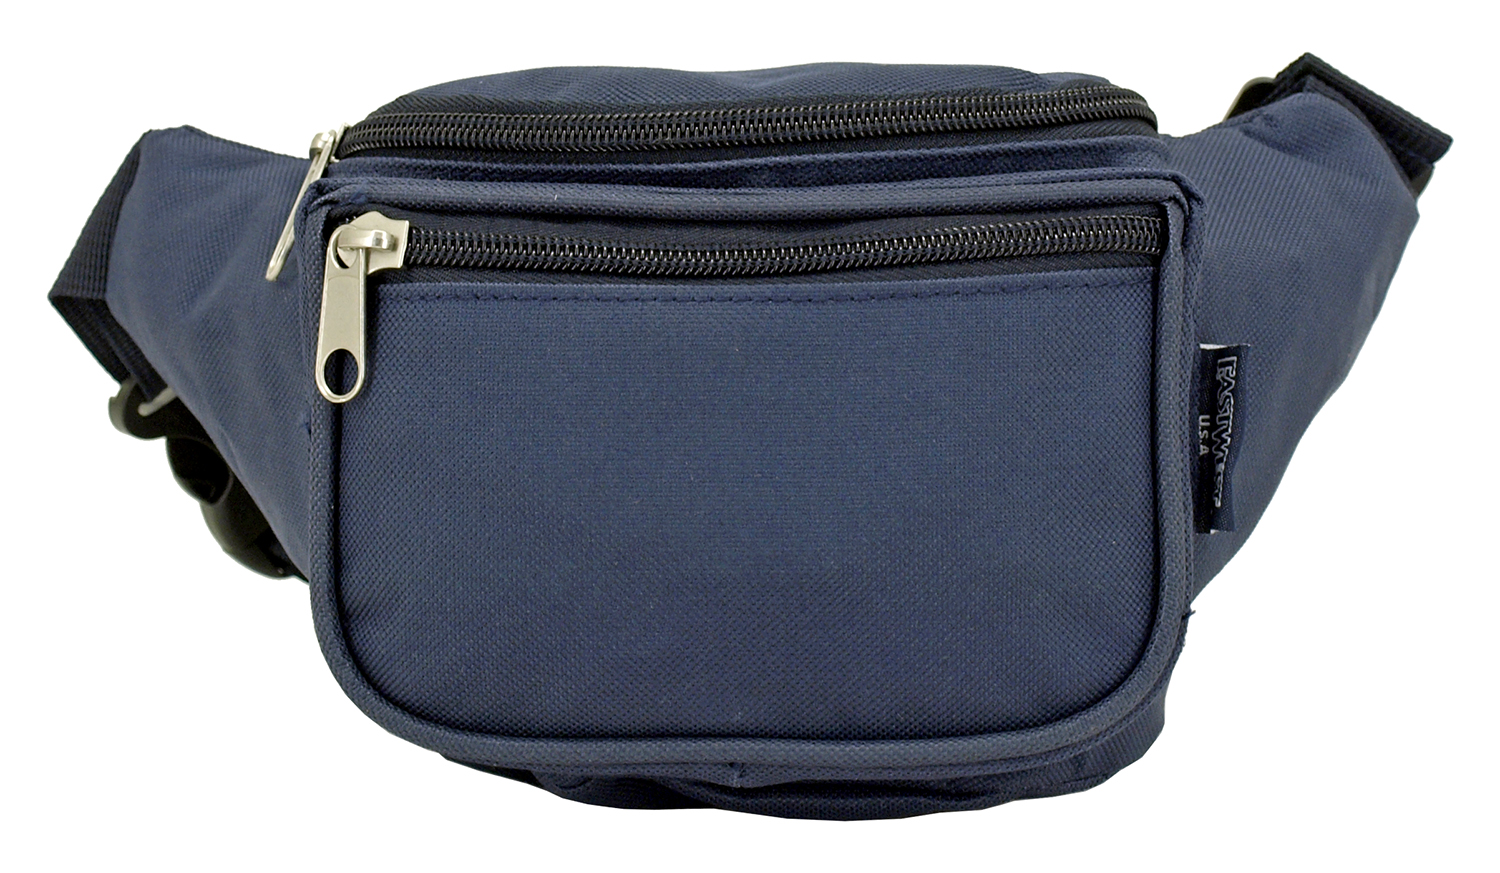 Medium Daily Fanny Pack with Pouch - Navy Blue